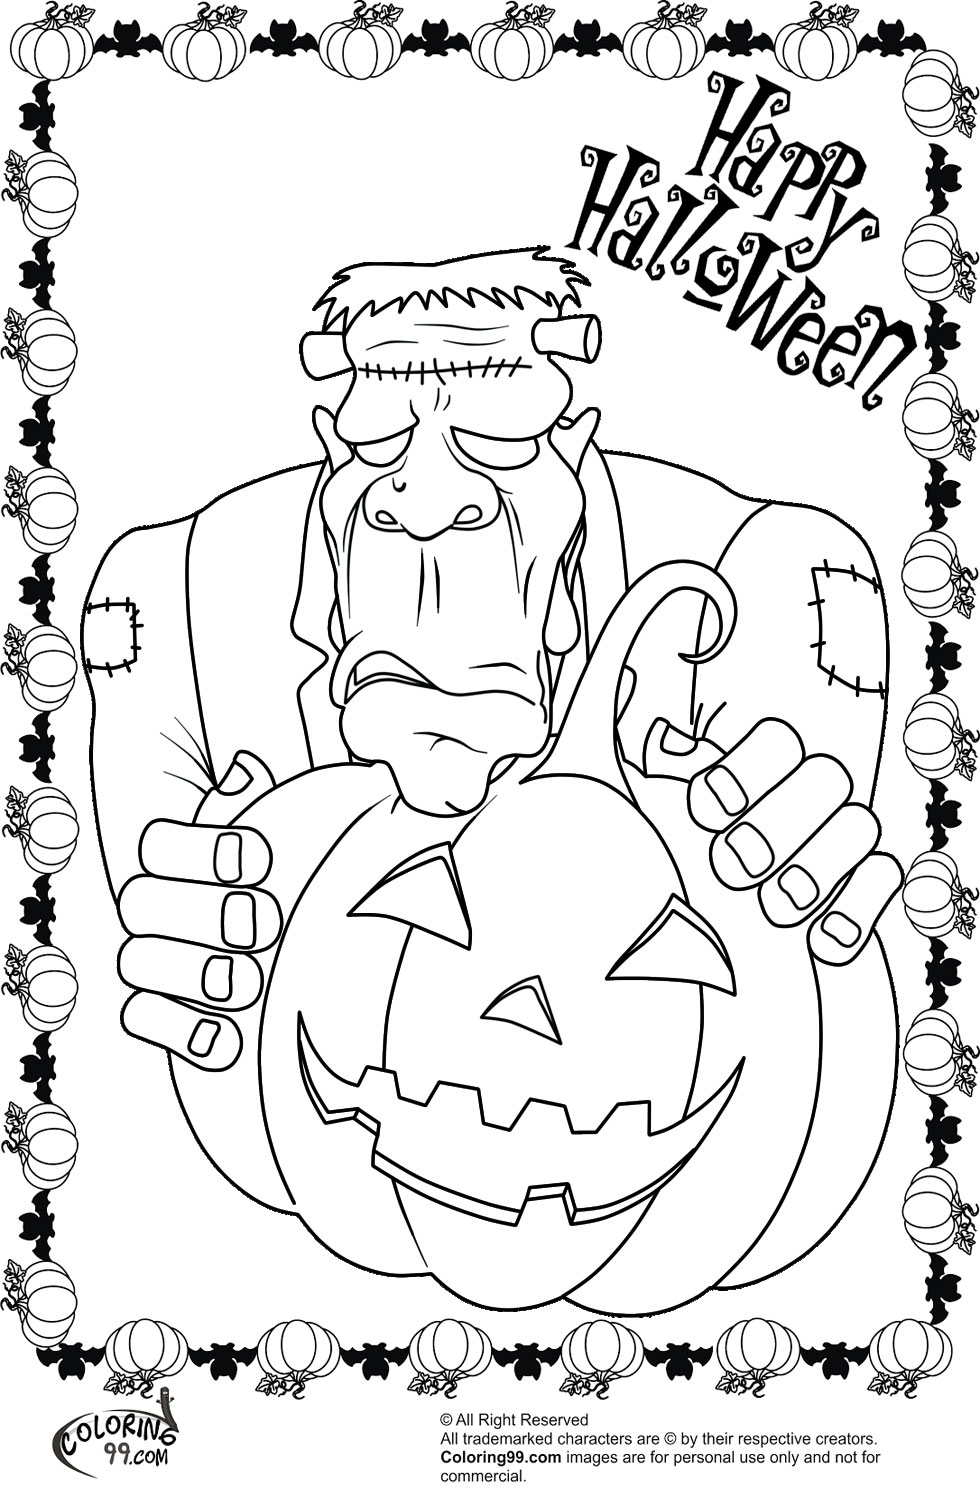 www halloween coloring pages | Frankenstein Halloween Coloring Pages | Team colors